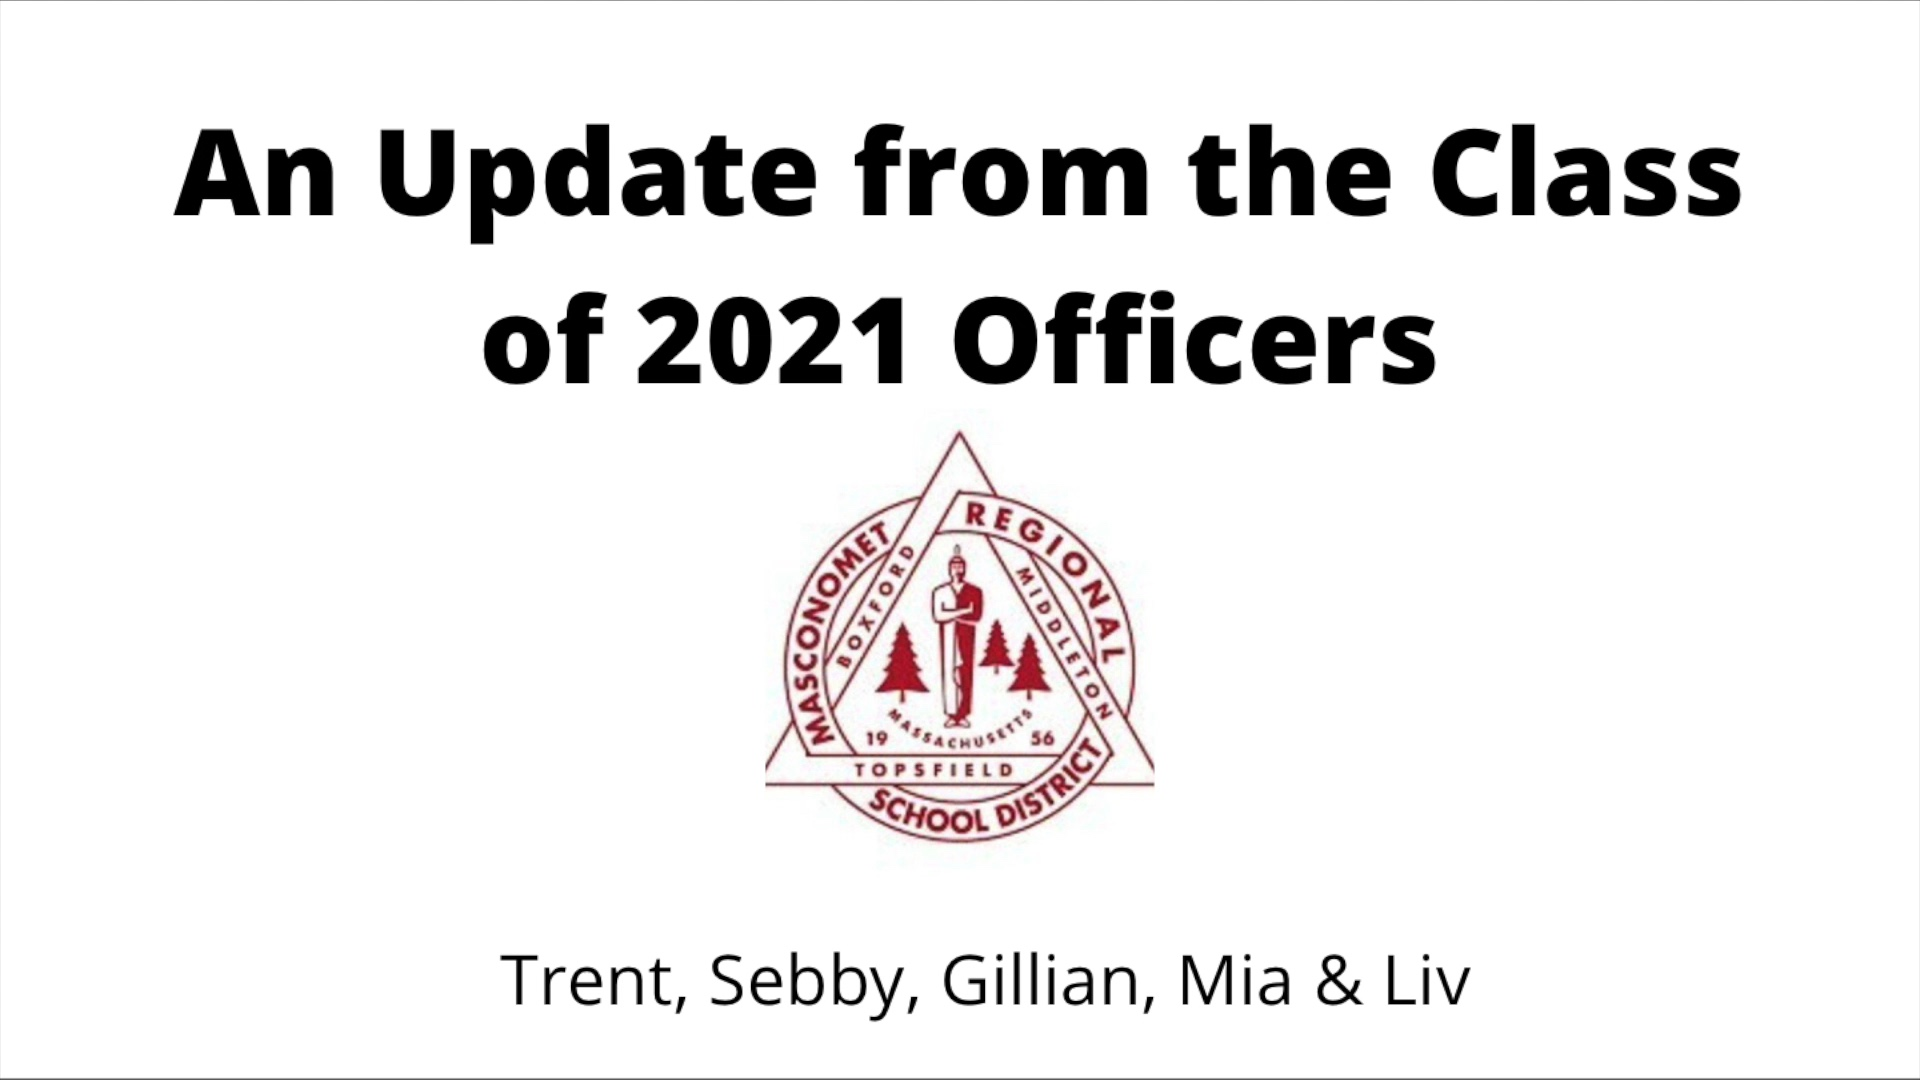 An Update from the Class of 2021 Officers